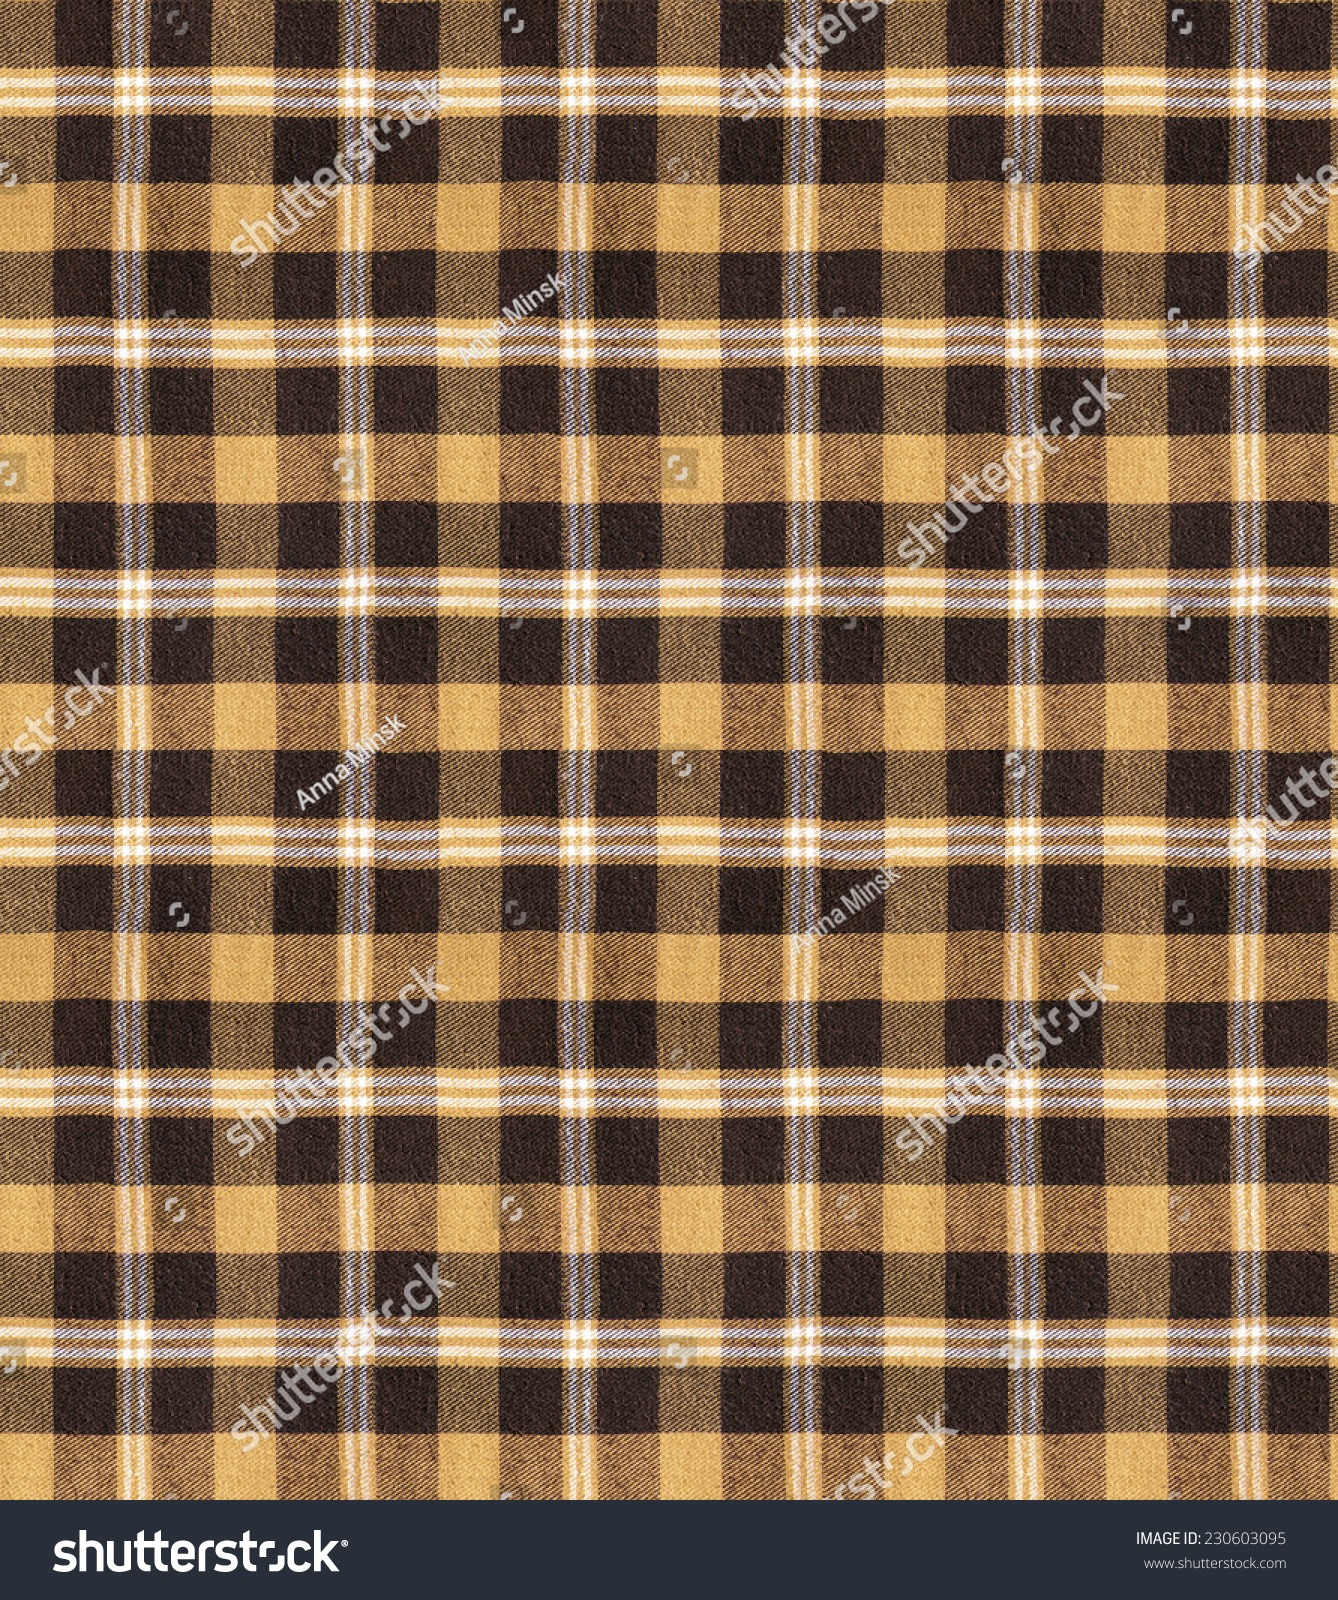 Brown Seamless Fabric Textures Fabric Plaid Texture Cloth Background Plaid Seamless Pattern